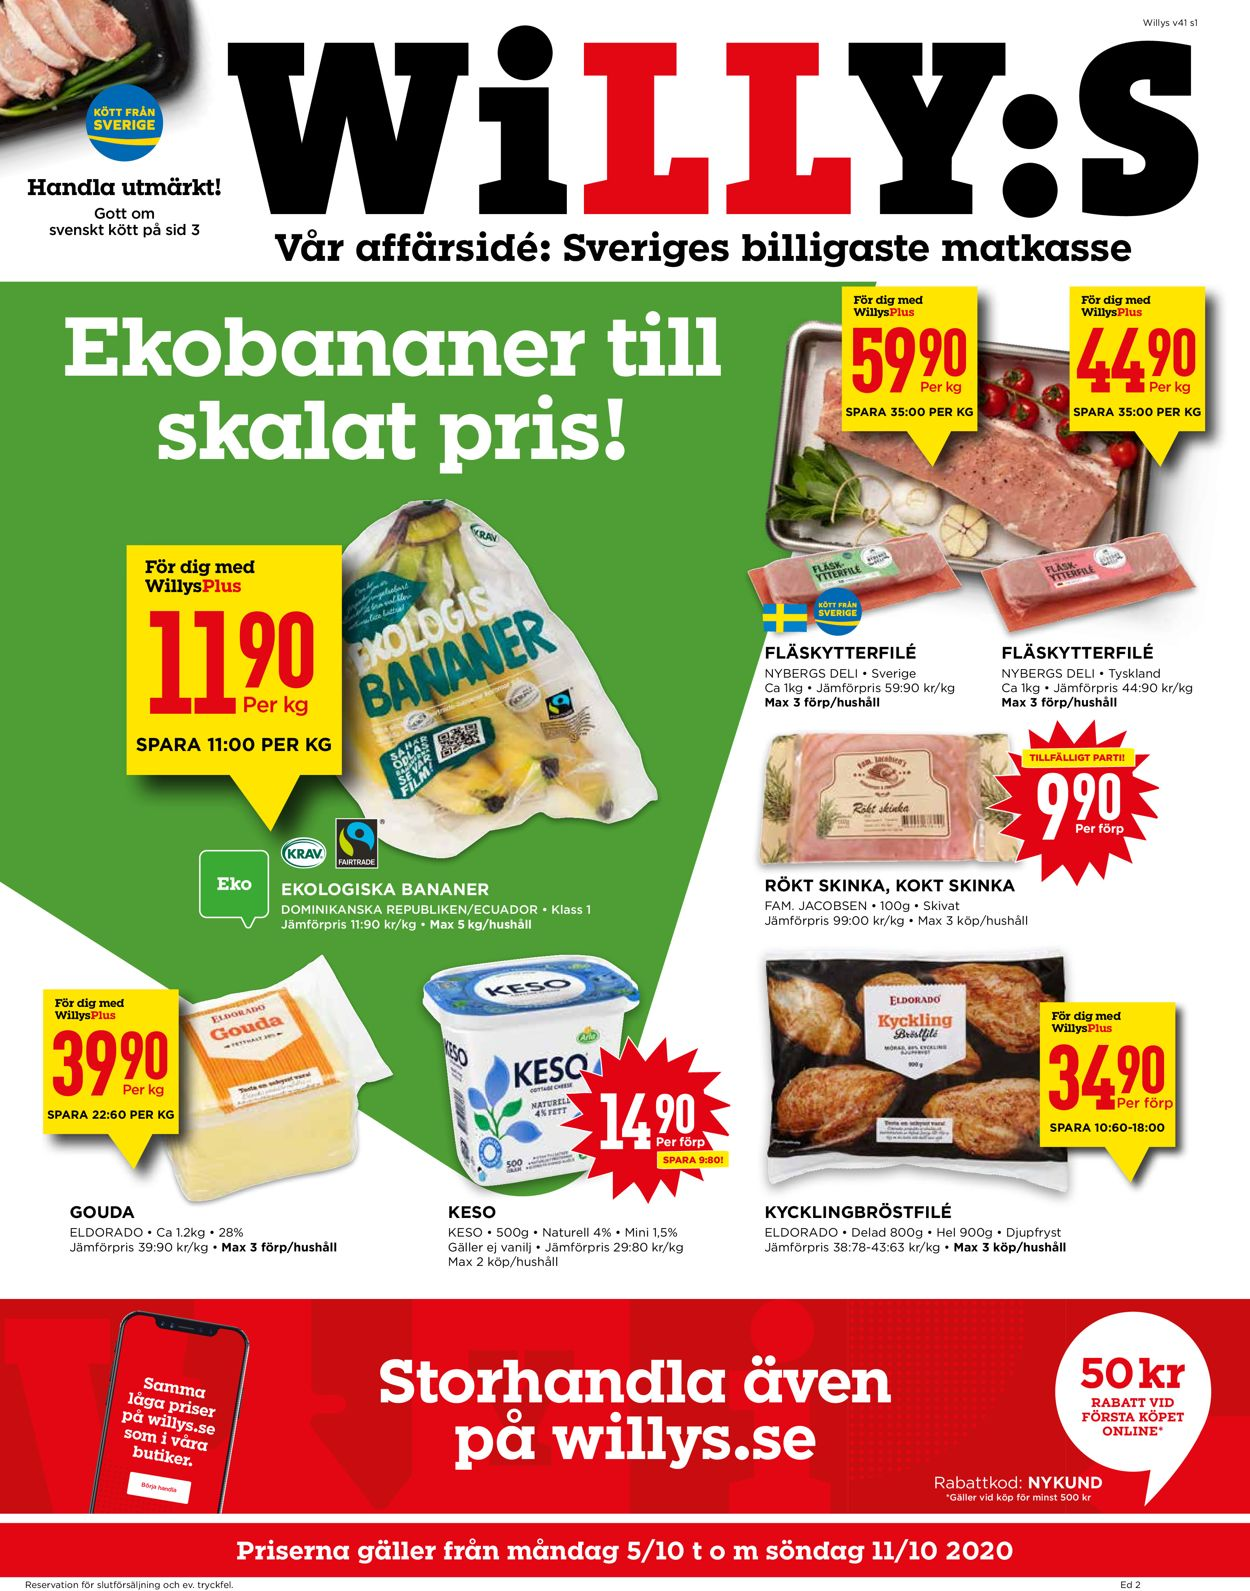 WiLLY:S - Reklamblad - 05/10-11/10-2020